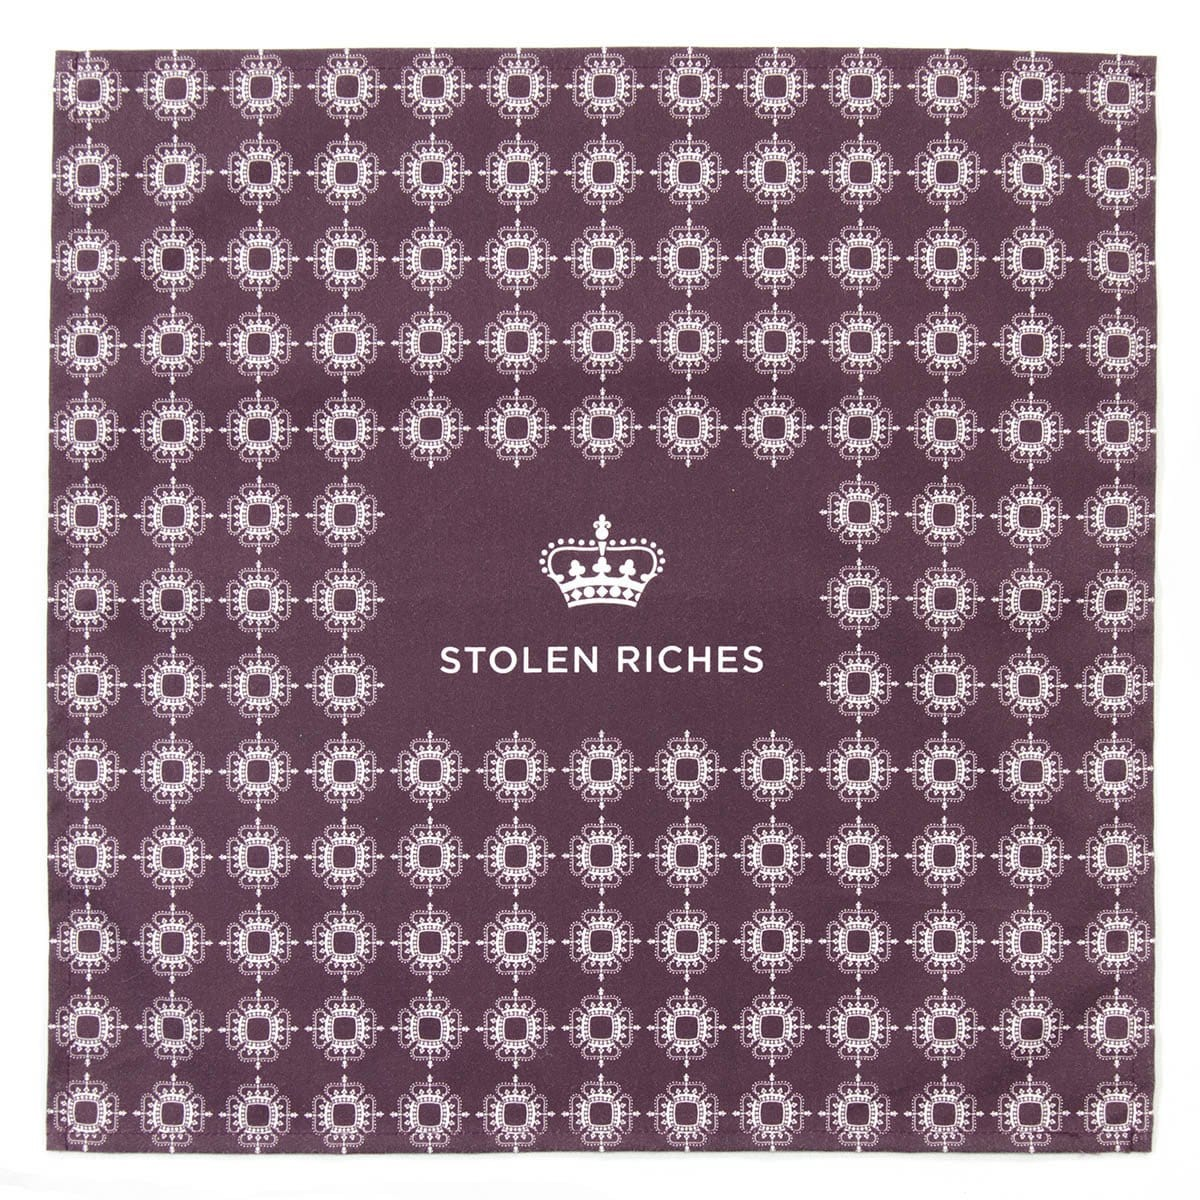 "Der Alte Burgundy - Crown Pattern Pocket Square (13""x13"") - Stolen Riches"